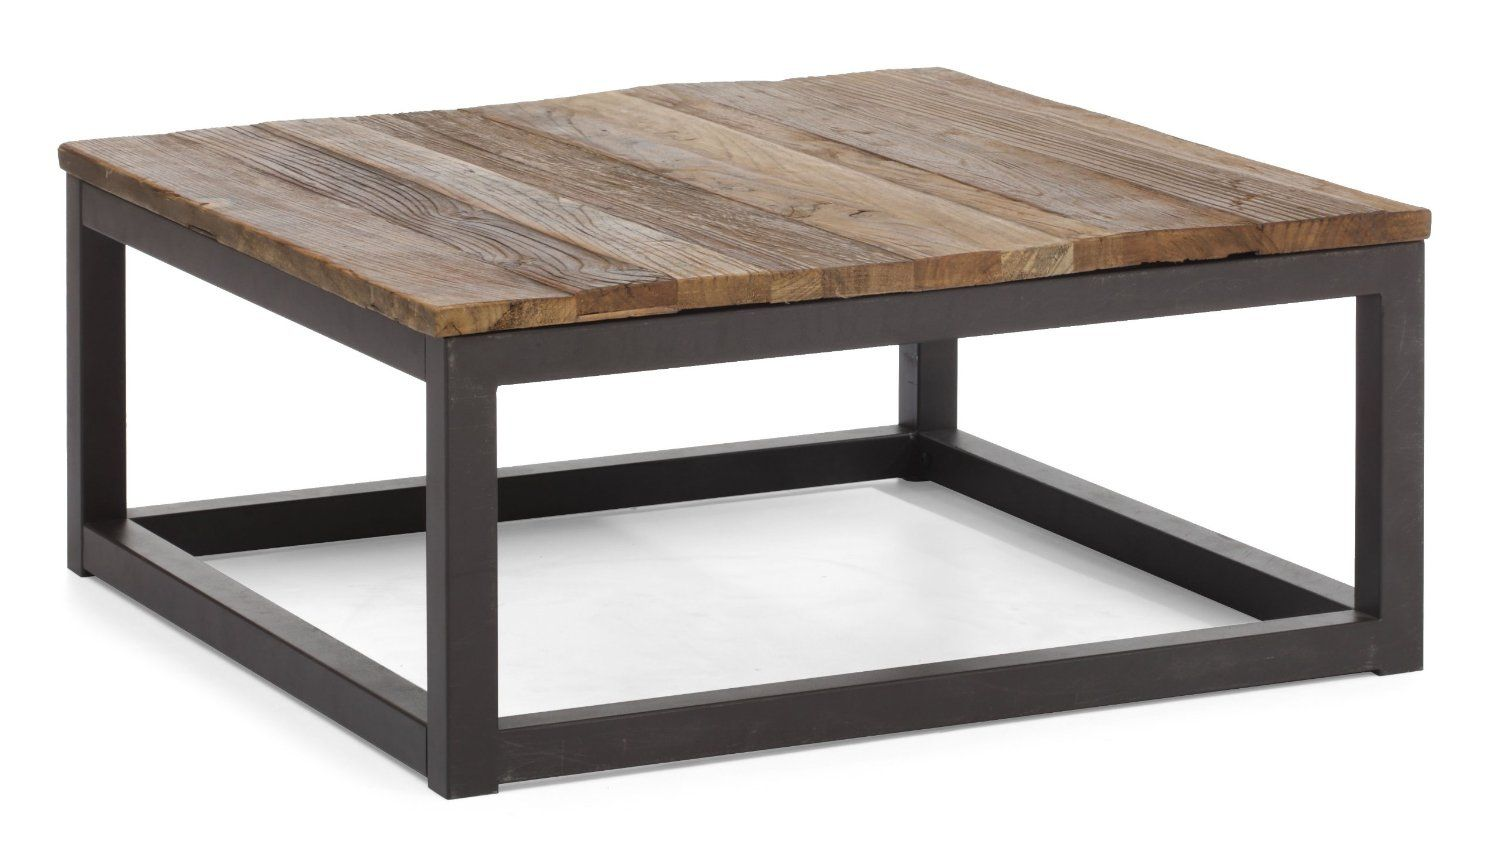 Distressed Wood Coffee Table  Modern Living Room Furniture Sets Classy Living Room Table Sets Design Decoration